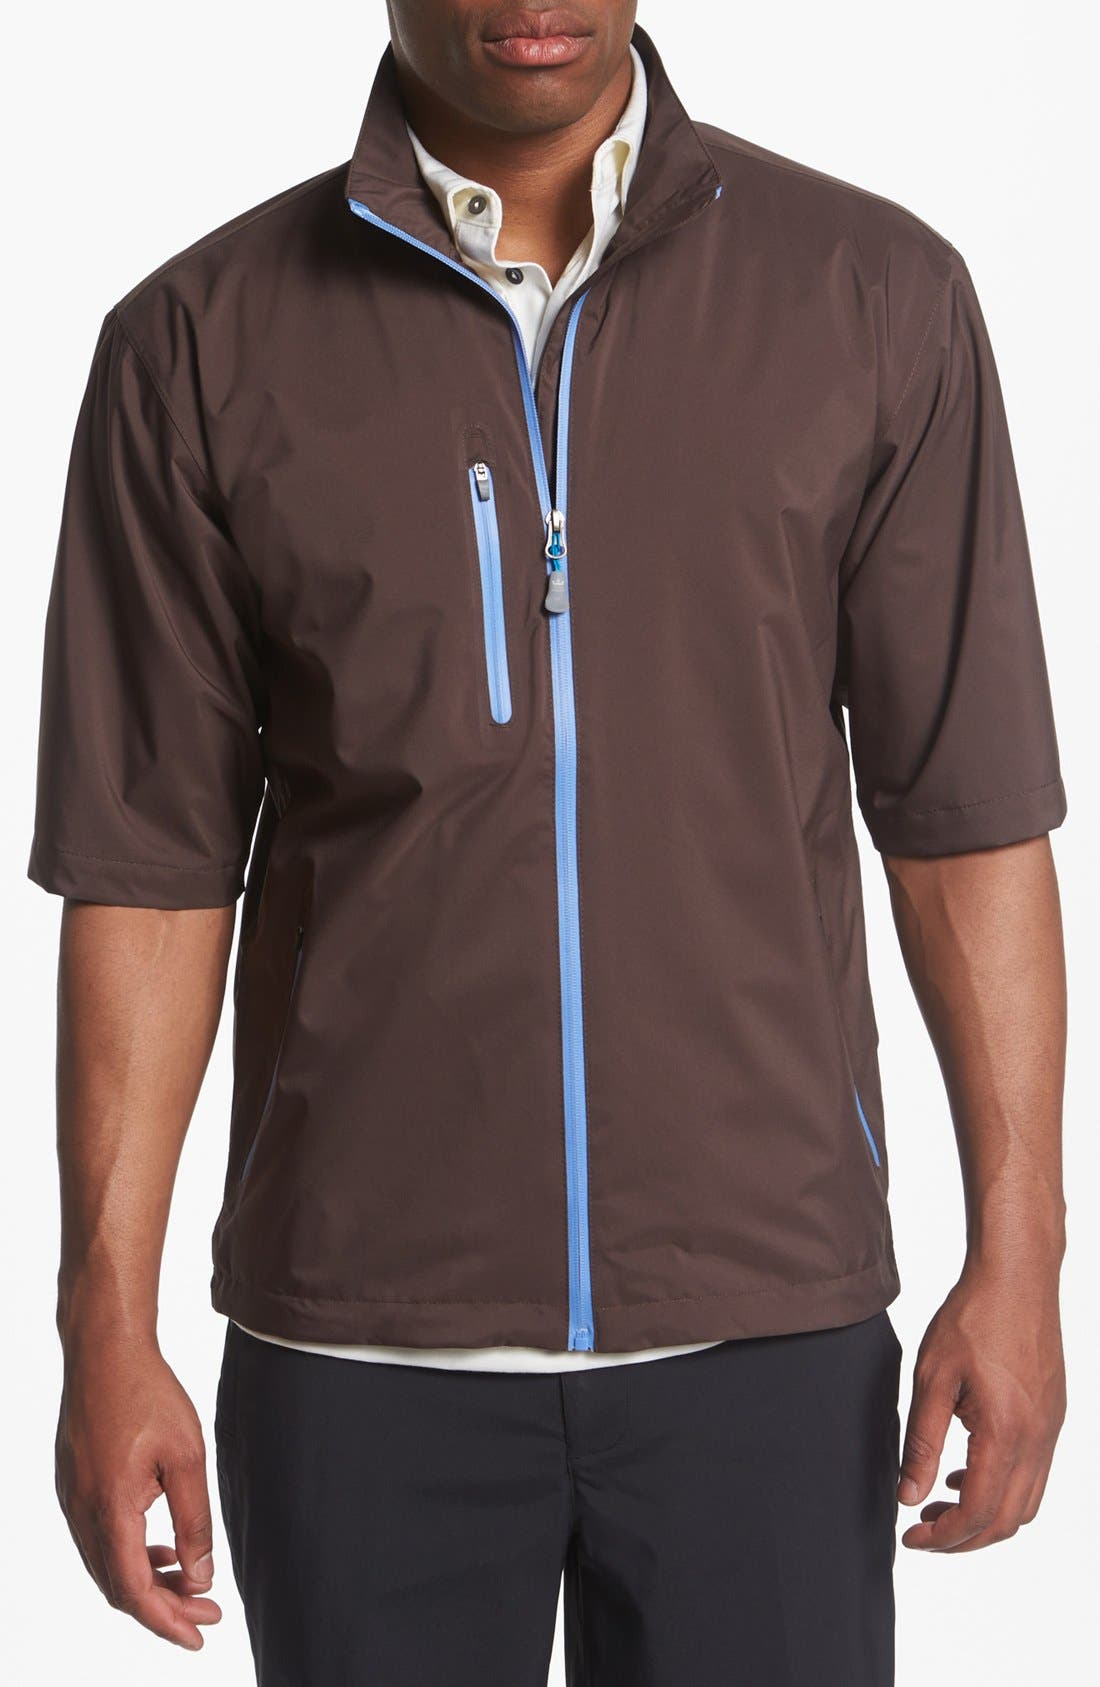 Alternate Image 1 Selected - Peter Millar 'Toronto' Short Sleeve Rain Jacket